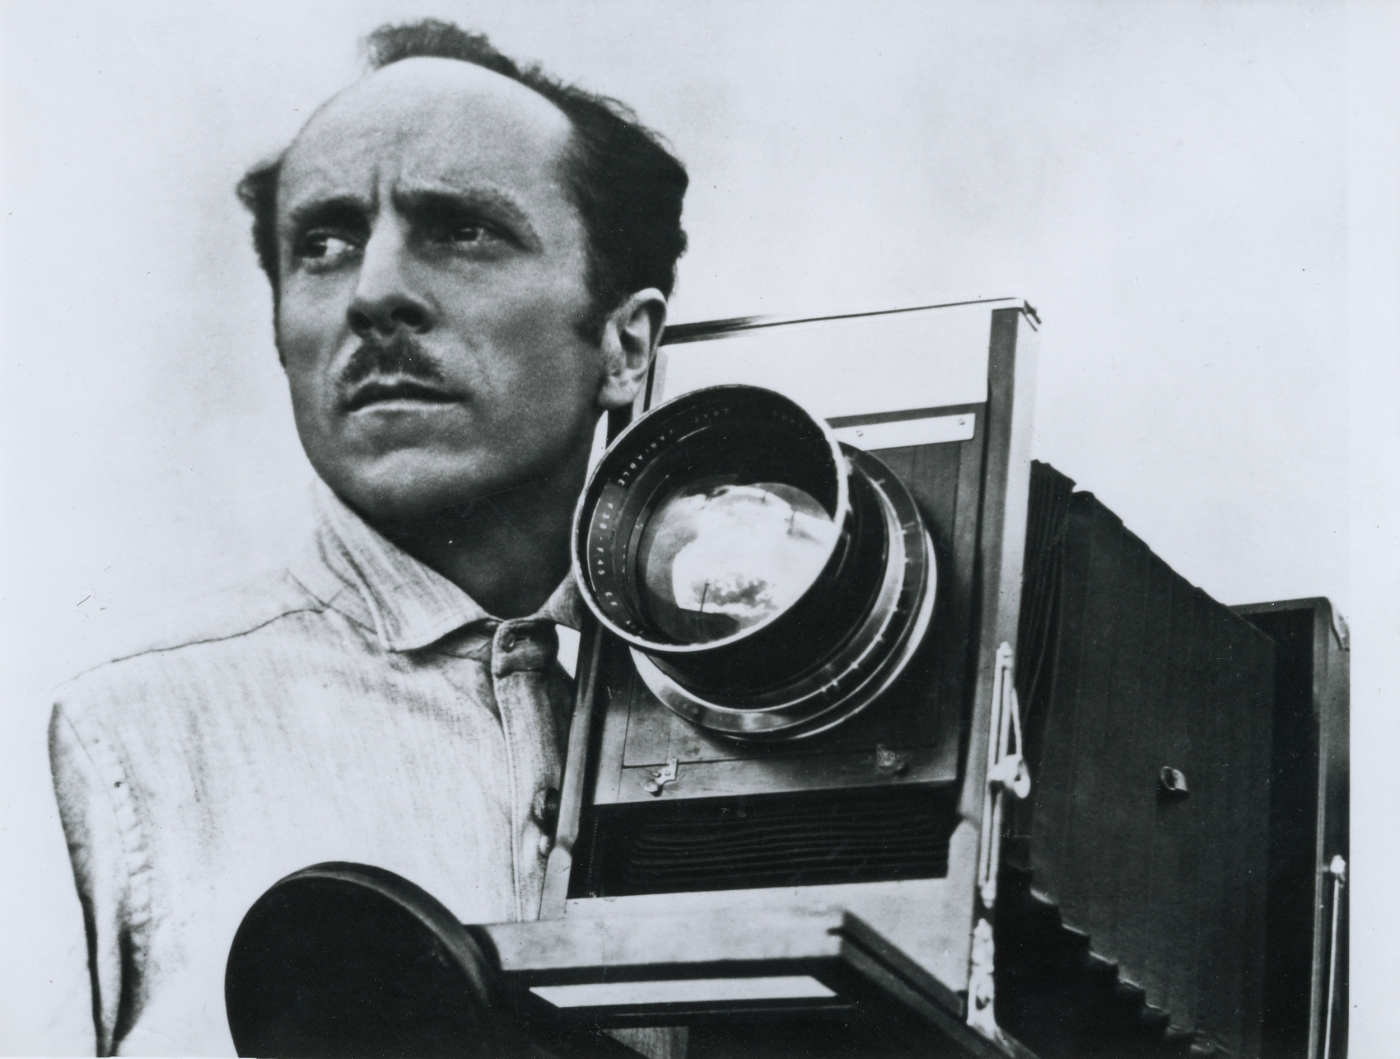 Edward Weston, fotógrafo.